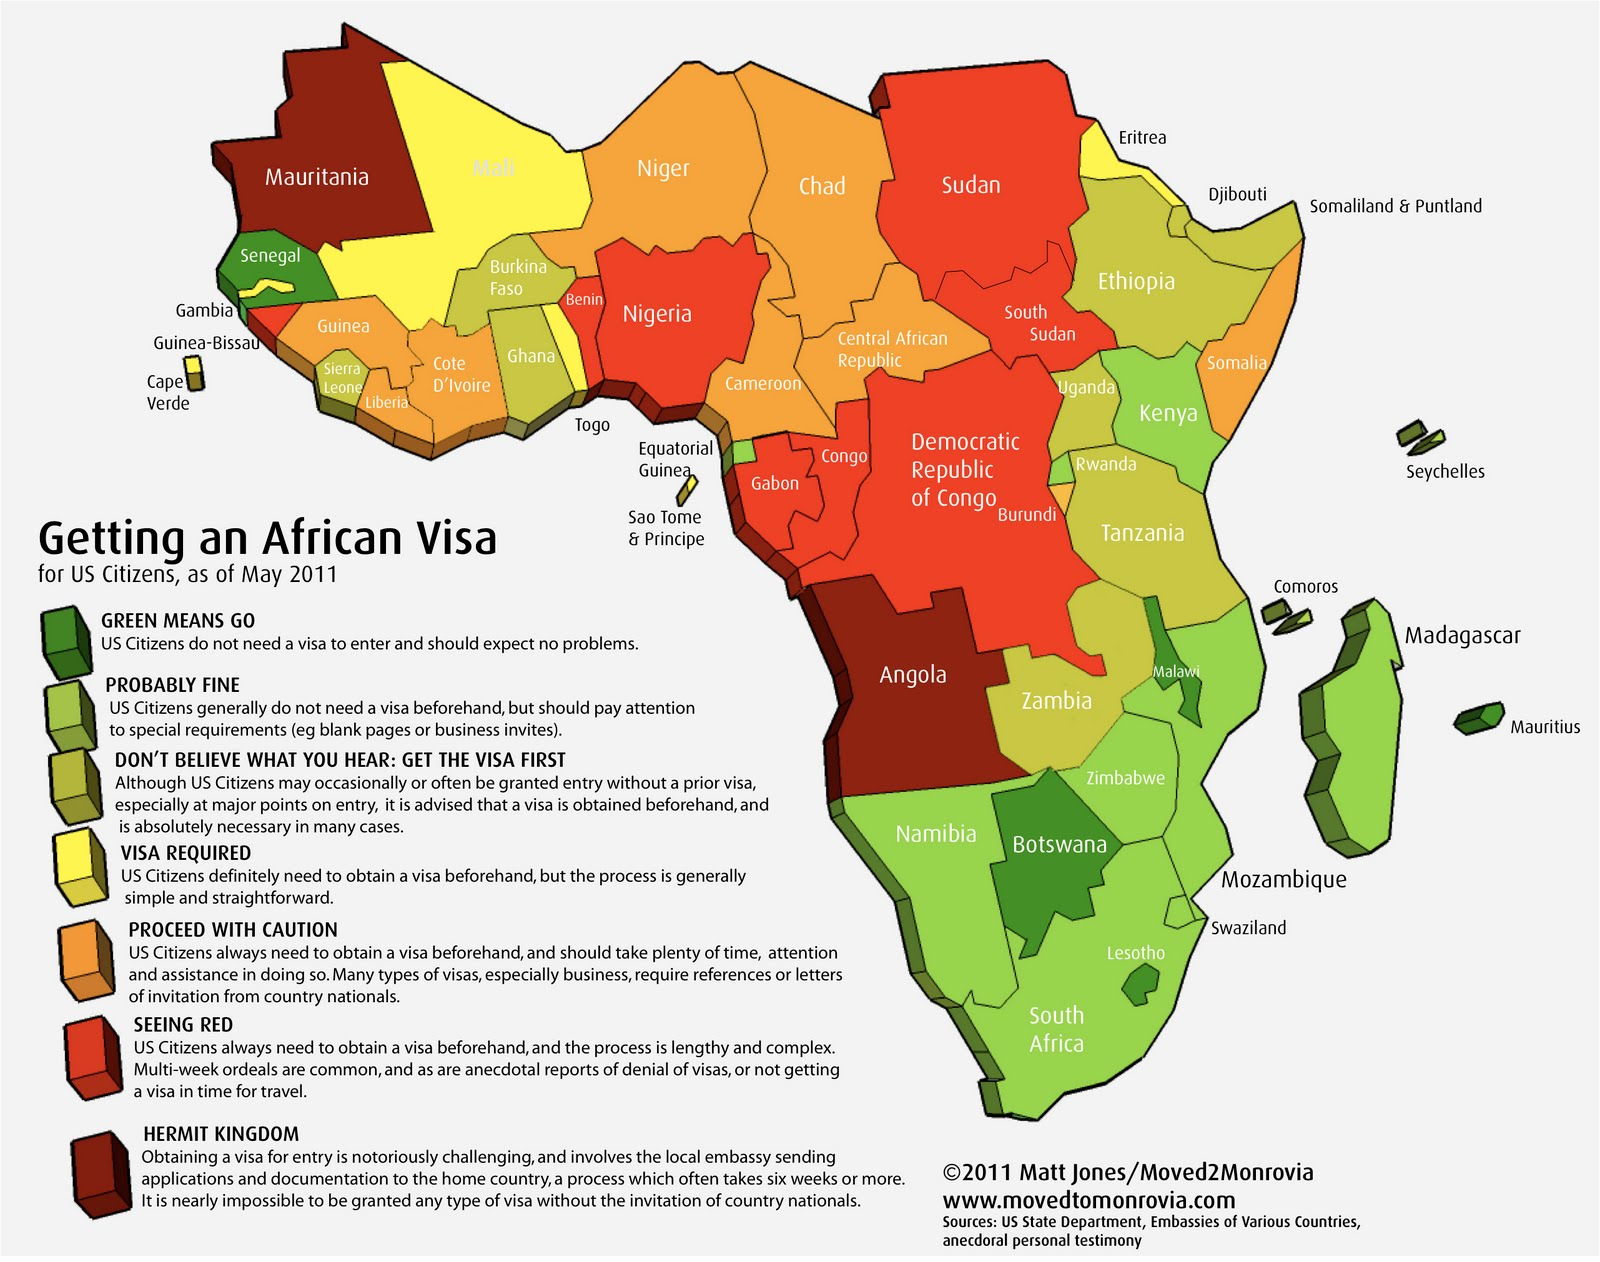 Moved Monrovia Just How Easy Or Hard Is It To Get African Visas - Us visa map